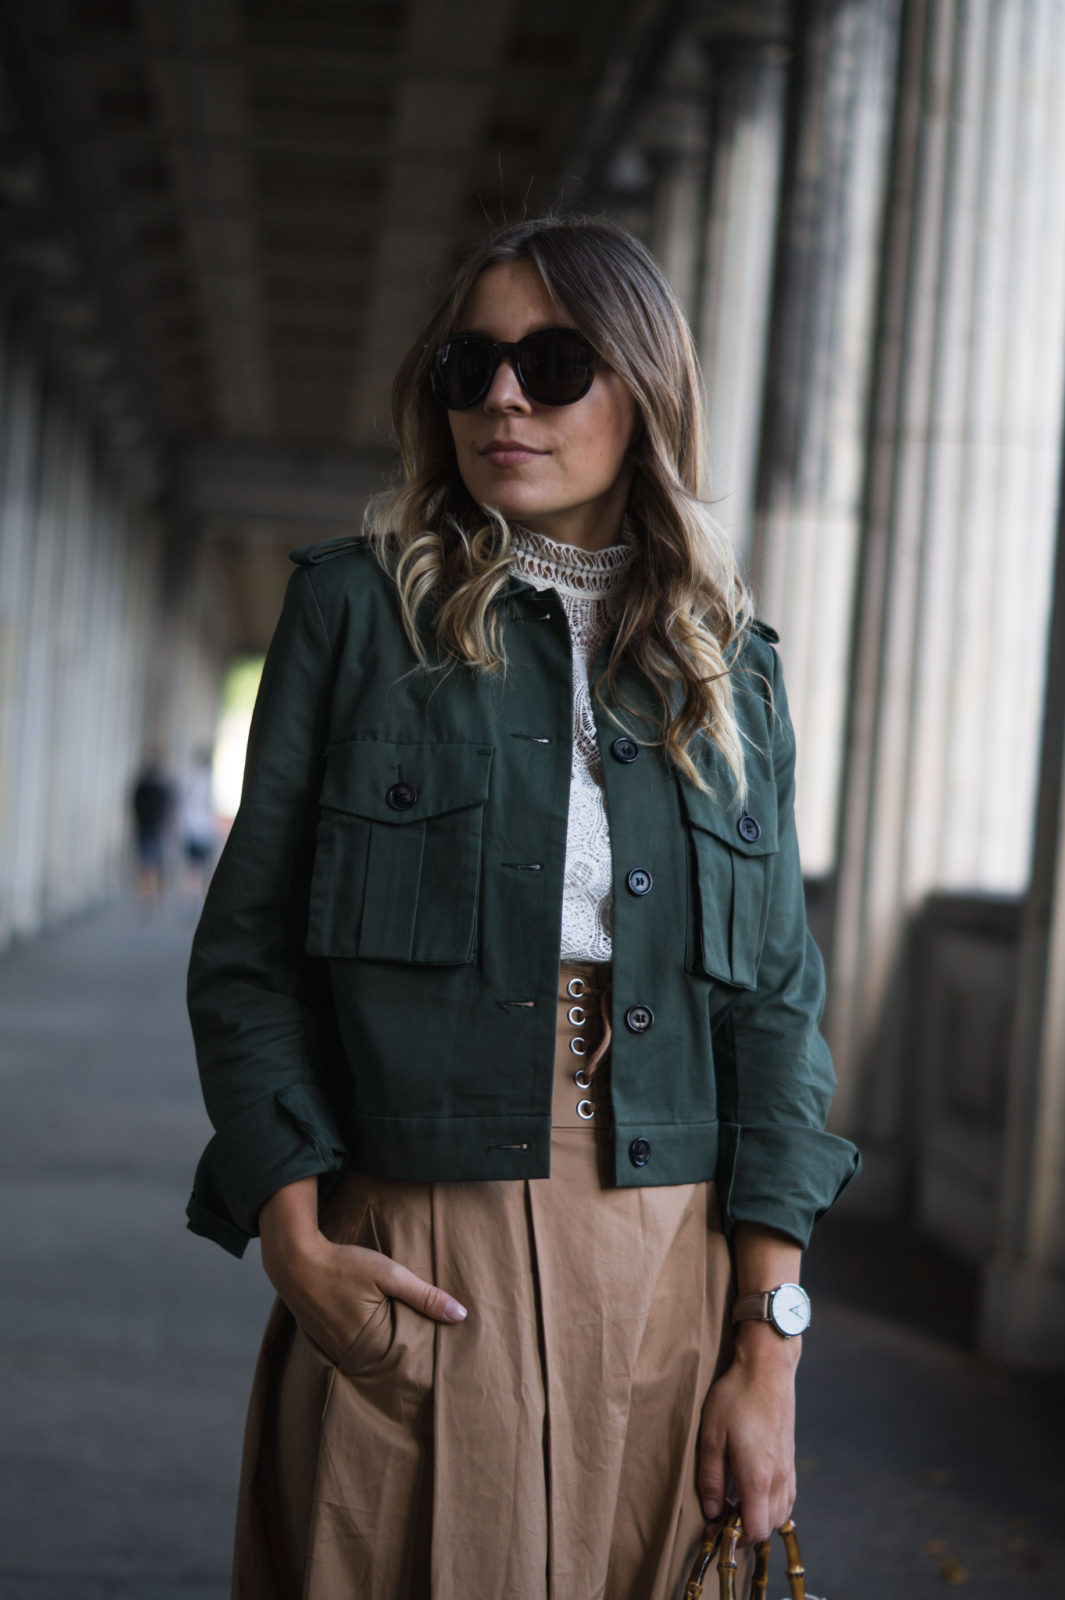 Fashion Week Berlin Streetstyle Sariety Midi Rock Skirt Museumsinsel MBFW Modeblogger Fashionblog Outfit-12